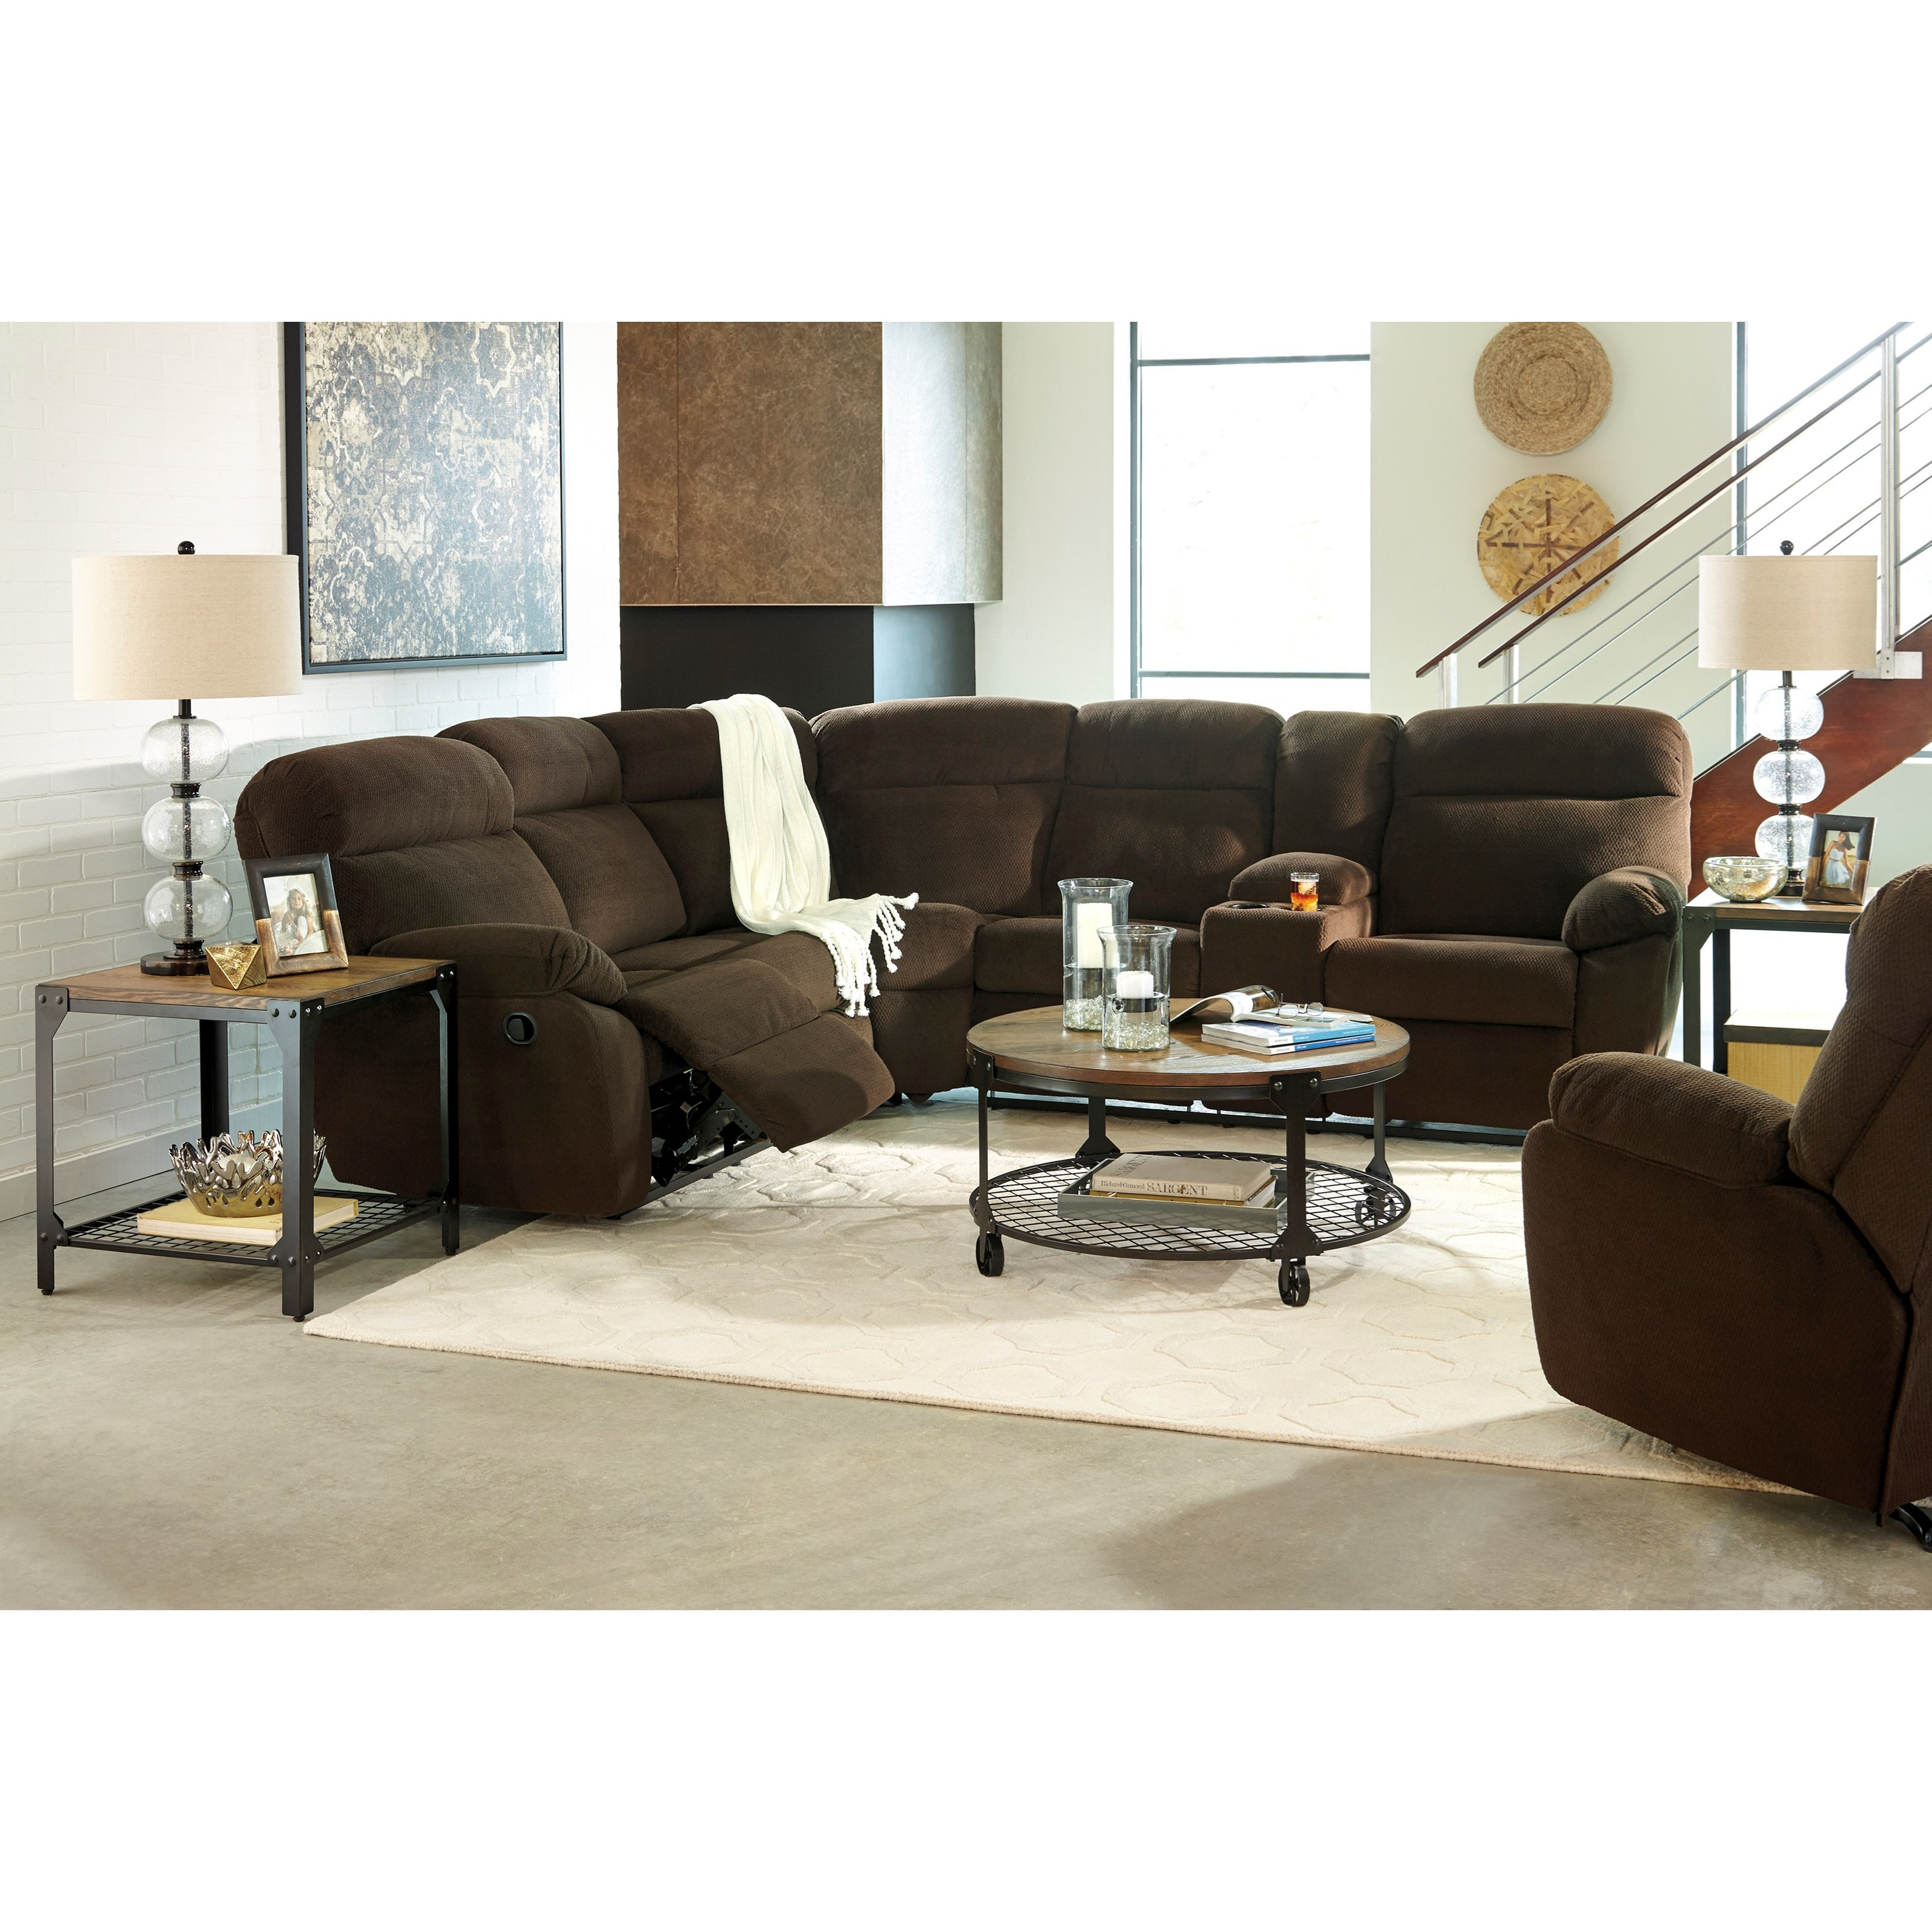 Ashley/Benchcraft Demarion Reclining Living Room Group - Item Number: 52303 Living Room Group 1